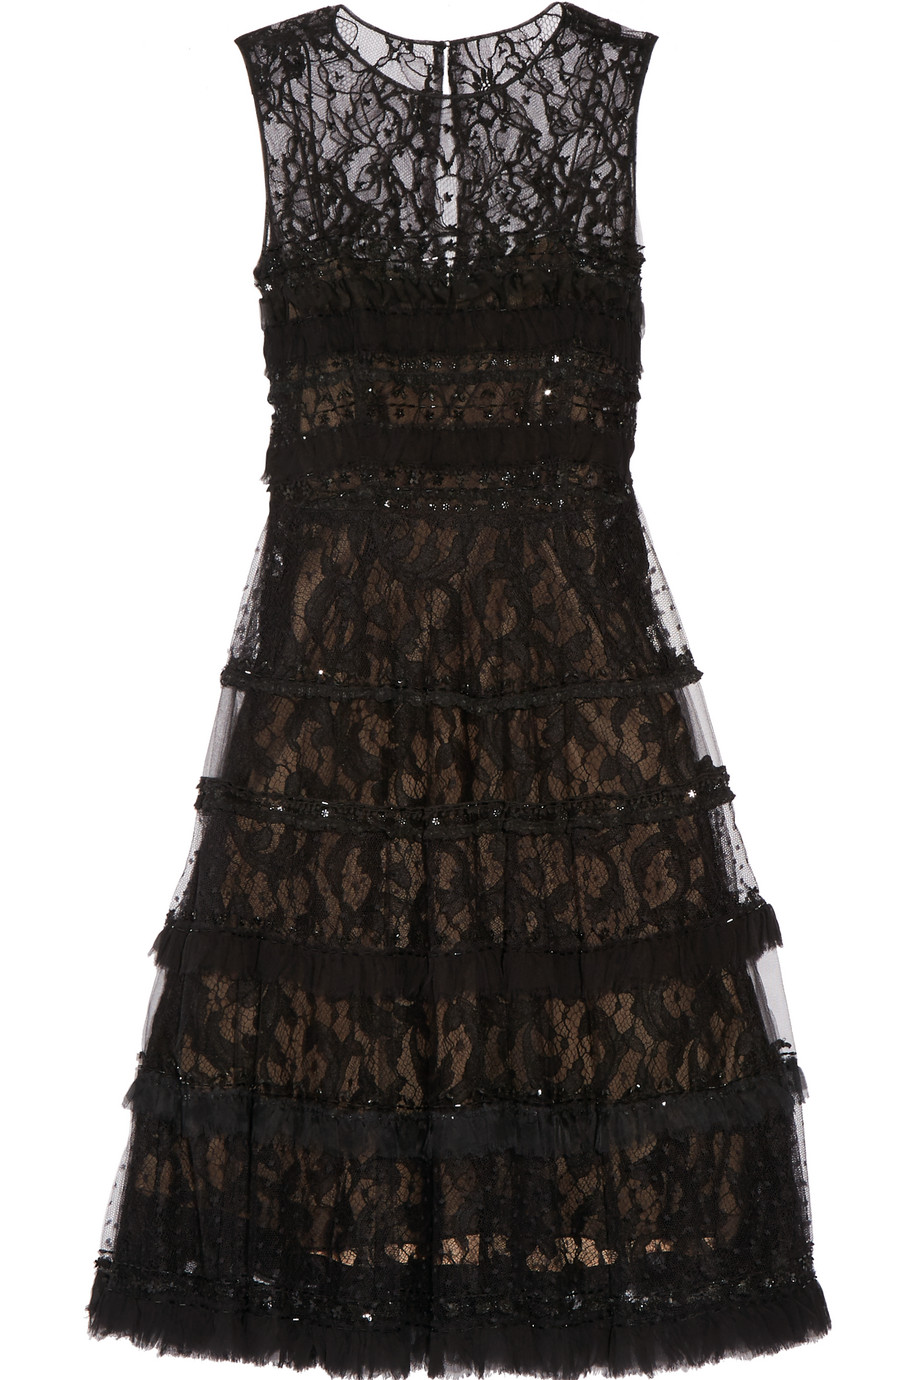 Oscar De La Renta Embellished Tulle, Point D'esprit and Lace Dress, Black, Women's - Floral, Size: 8